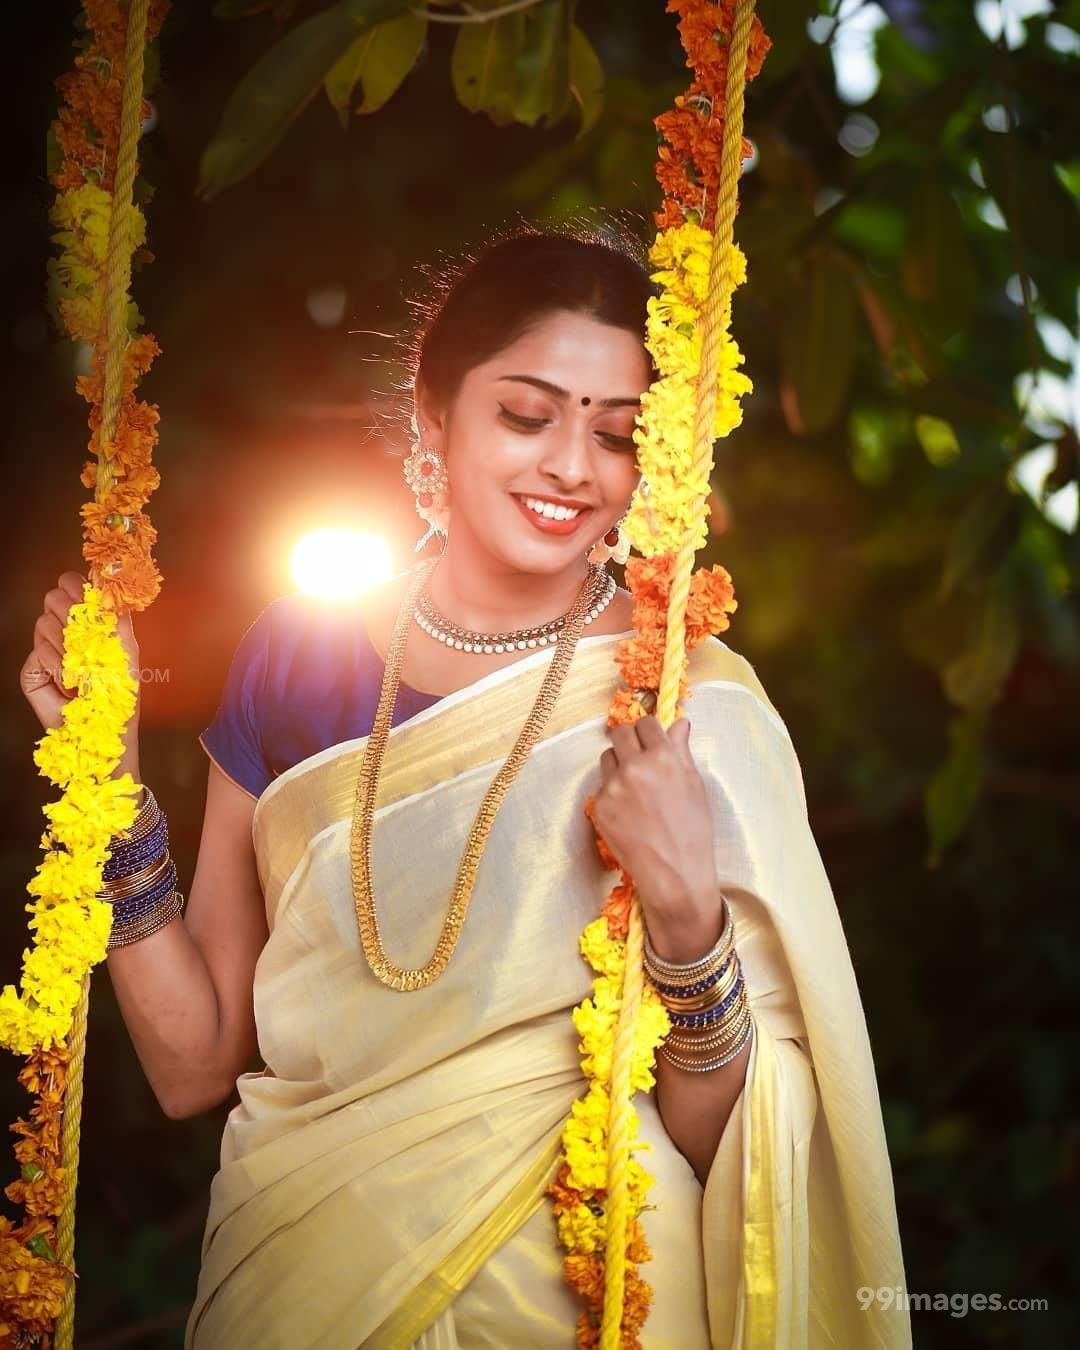 Sunu Lakshmi Hot HD Photos & Wallpapers for mobile Download, WhatsApp DP (1080p, 4k)